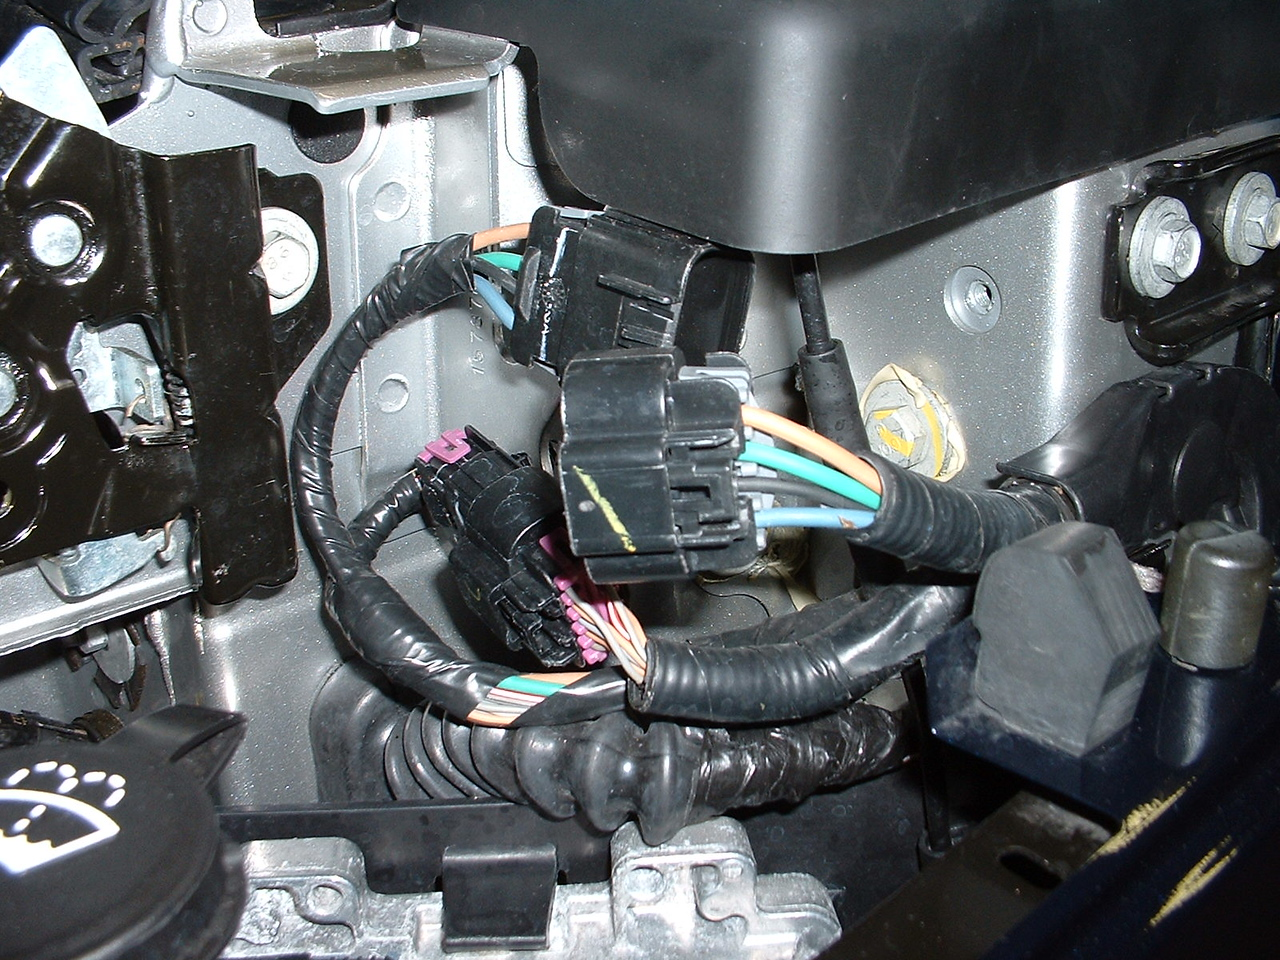 Driver's side plug for power window wiring